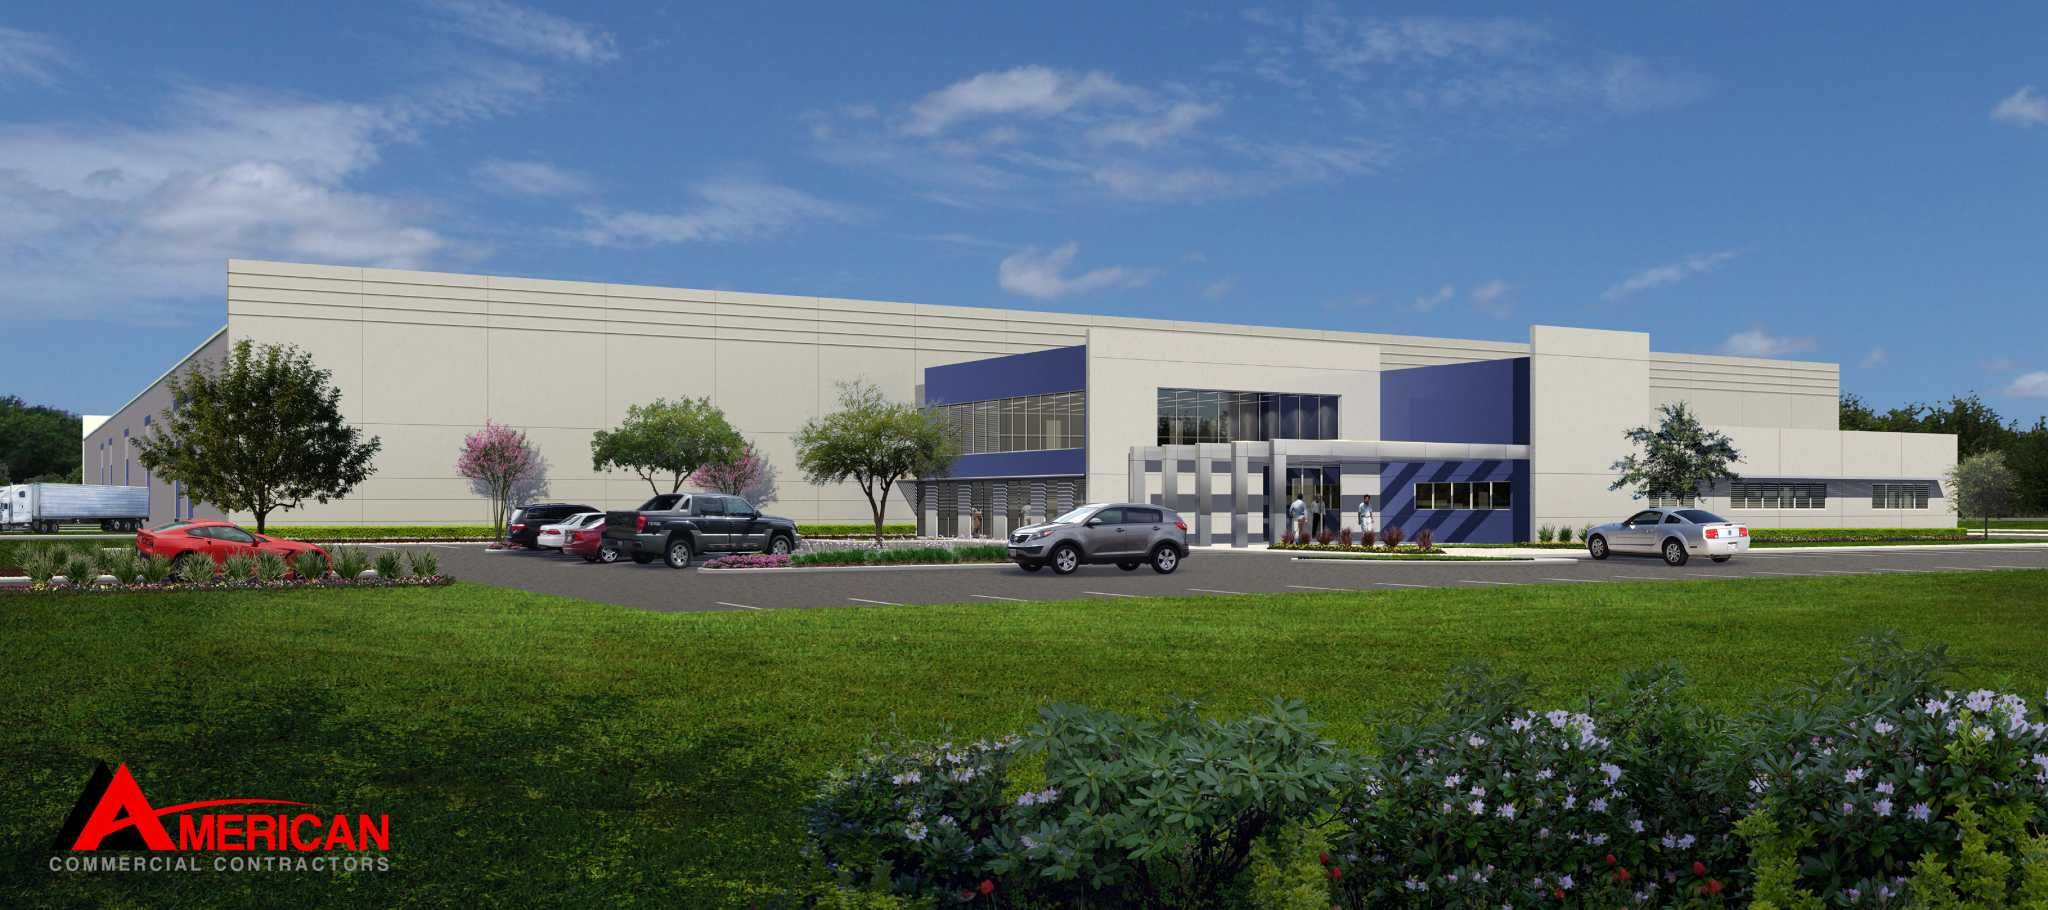 To accomplish that goal, the company is building 200,000 square feet of warehouse space, a 7-acre concrete pipe yard, 25,000 square feet of office space and a 20,000-square-foot machine shop on the property.  Frank Riddick, FloWorks' chief executive officer, said Pearland was selected because of the availability of land, proximity to the company's existing locations and customers, access to transportation routes, business-friendly local government, and tax abatements not available in…